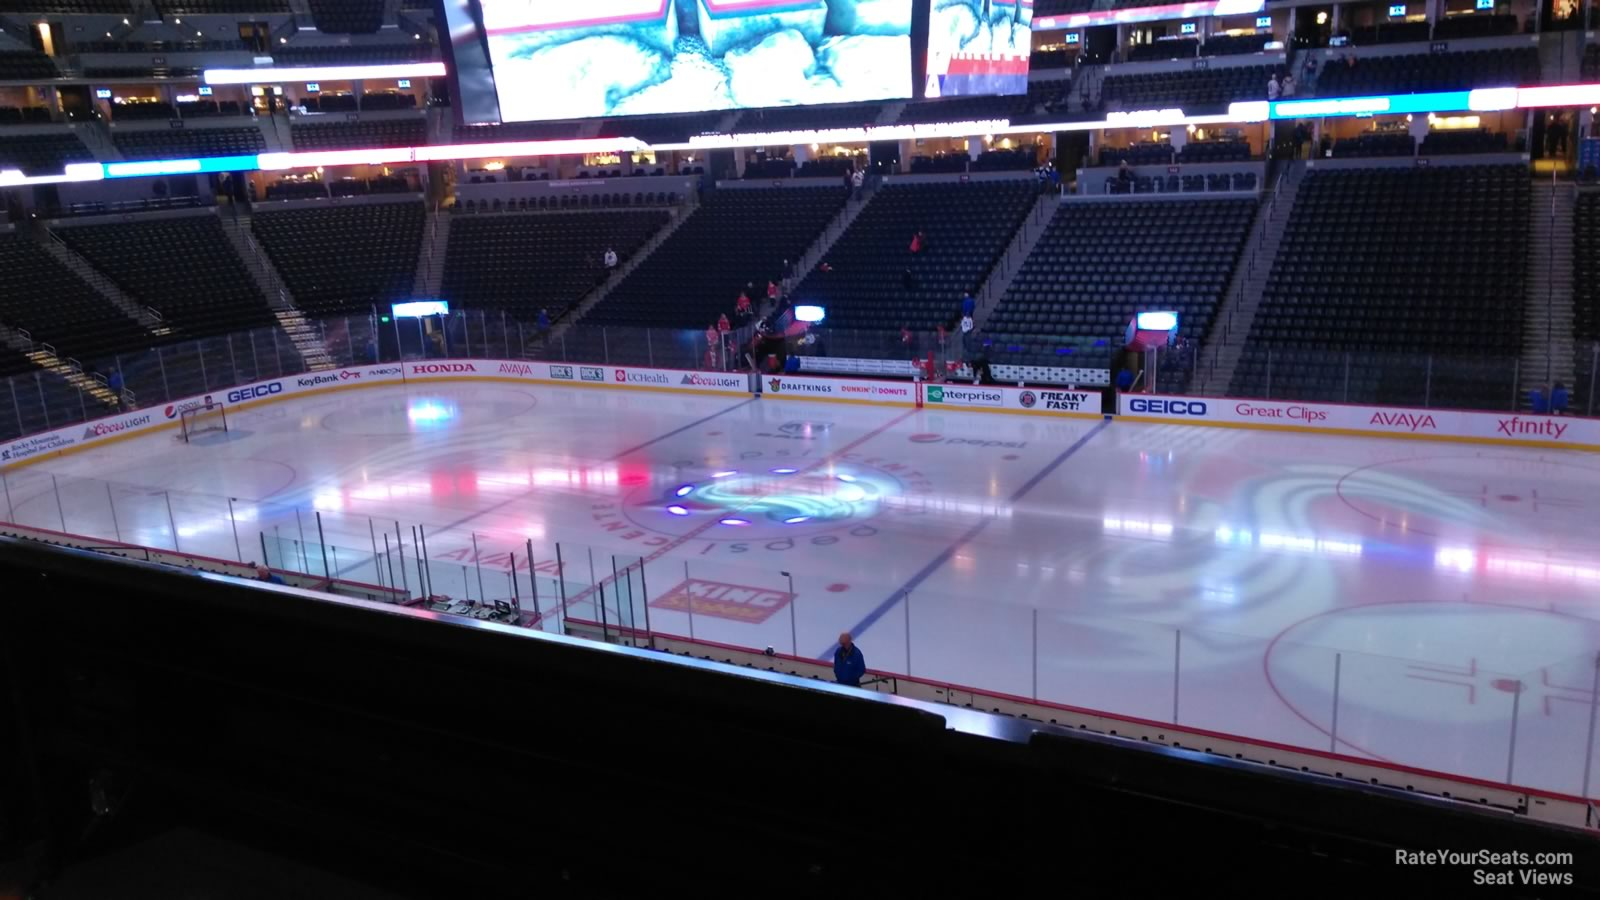 Section 226 seat view